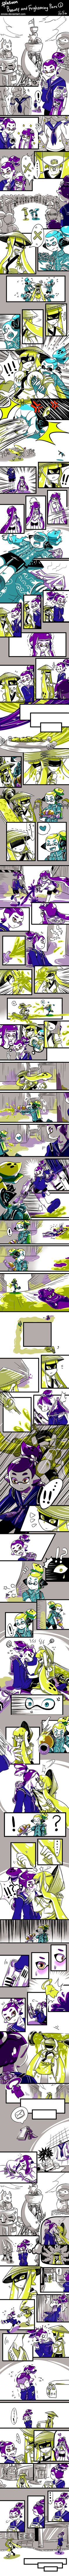 [Splatoon] Beauty and Frightening long comic part1 by zzoza